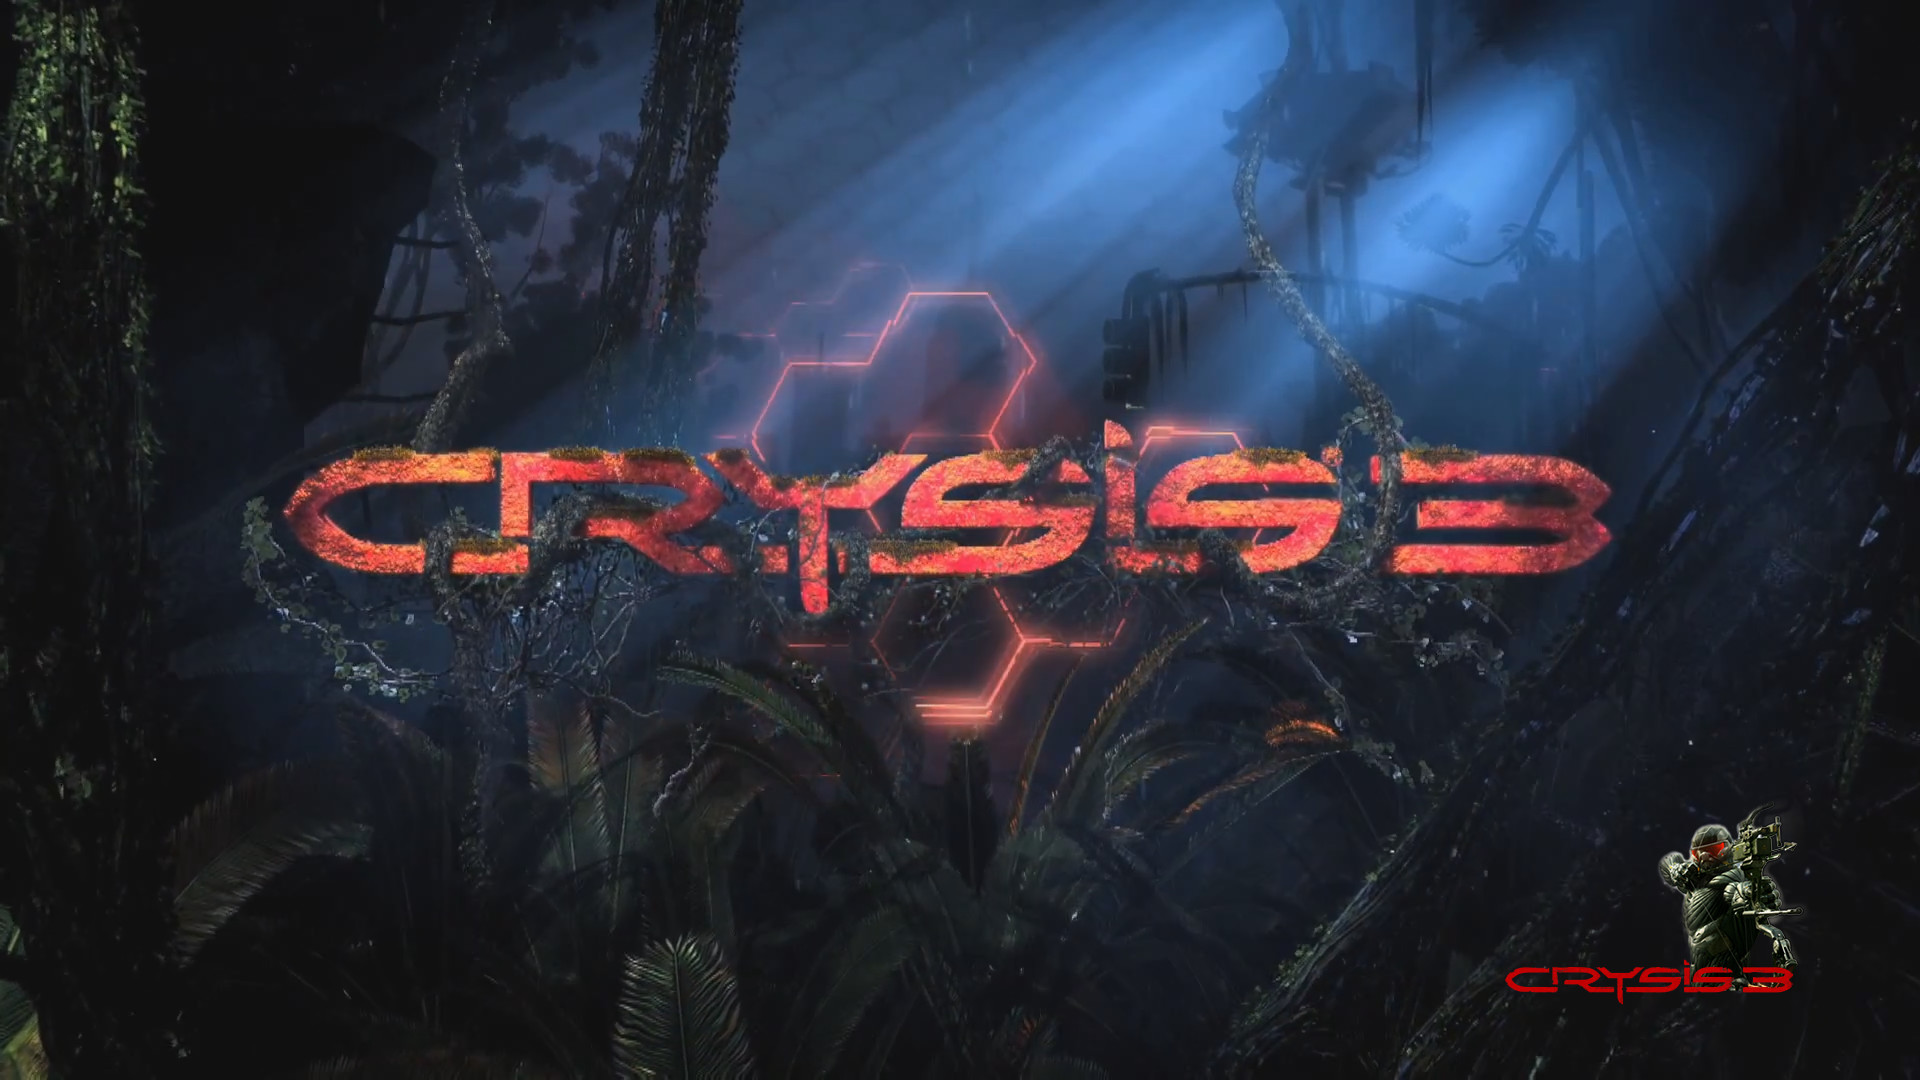 1920x1080 Crysis 3 Wallpaper (75 Wallpapers) - HD Wallpapers